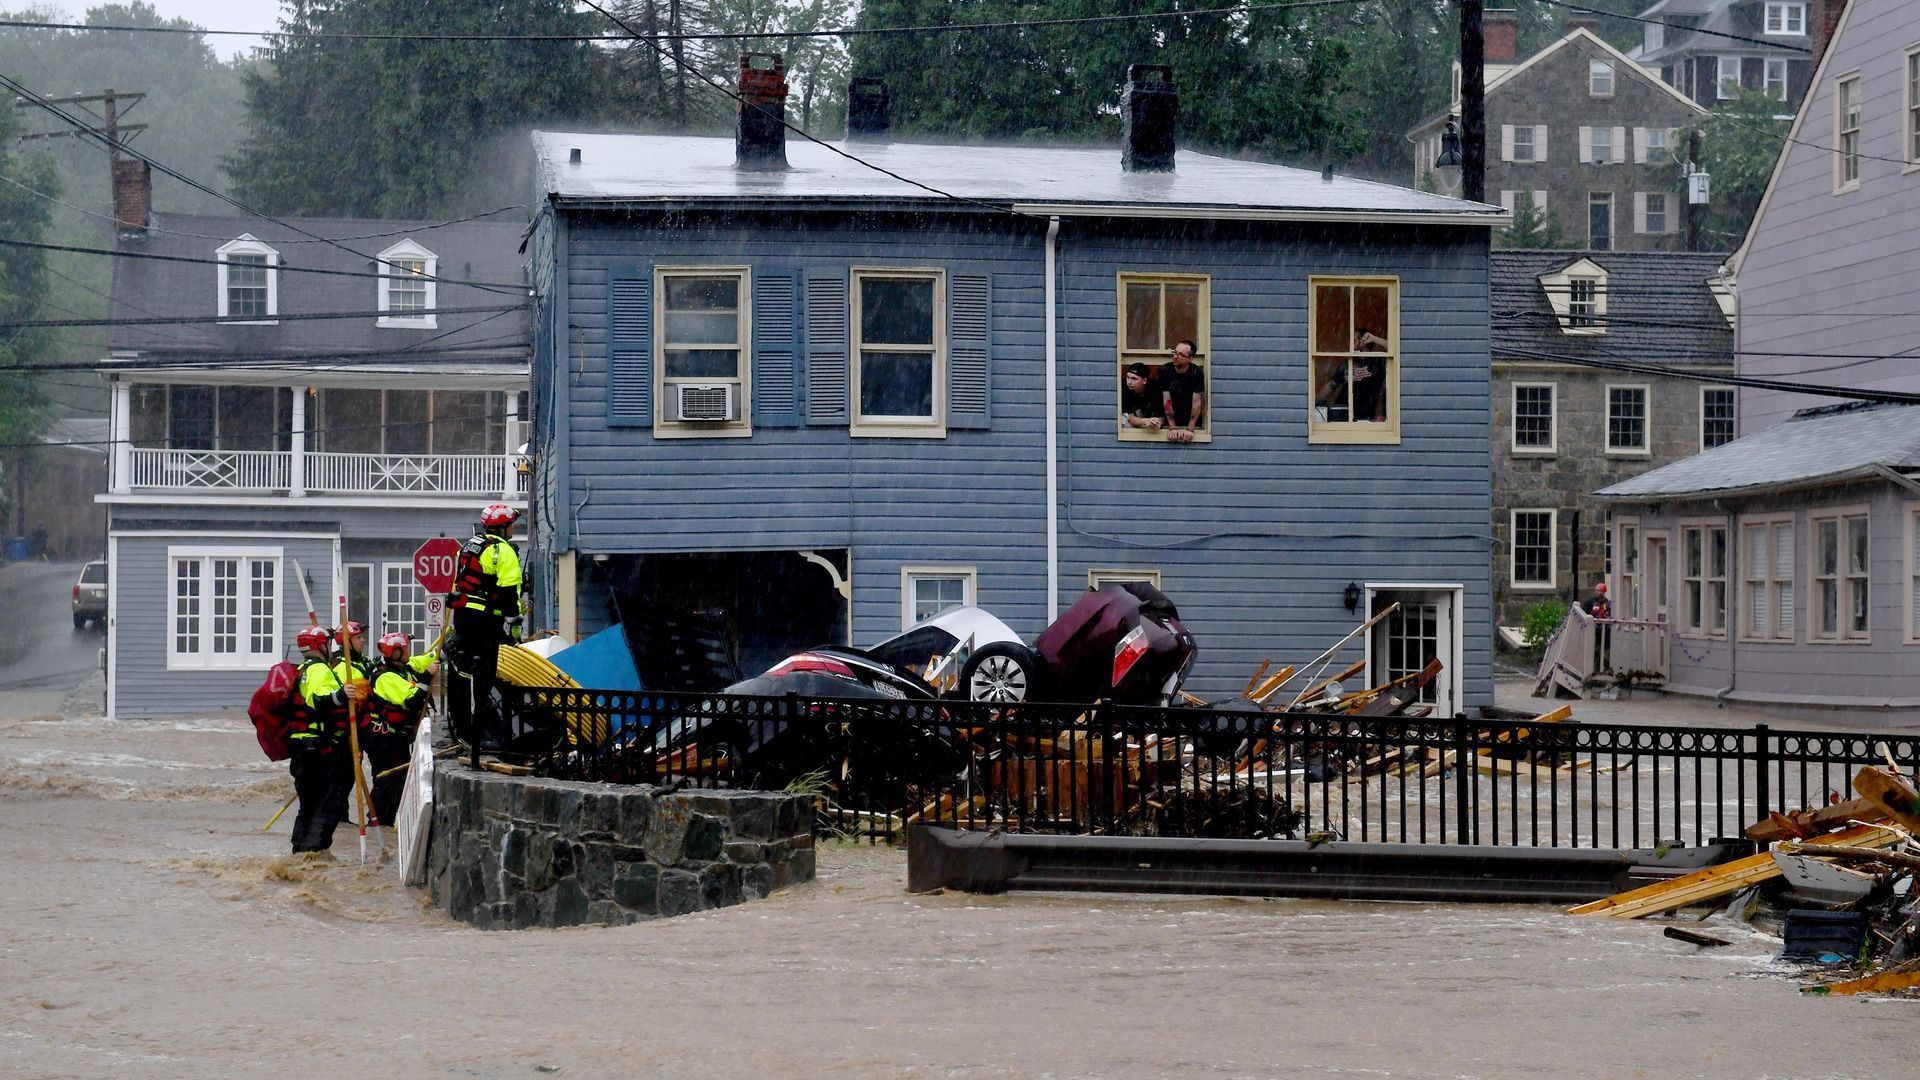 Rescuers work to free people trapped upstairs from a record store during torrential rain that caused flash floods along Main Street May 27, 2018 in Ellicott City, Maryland.